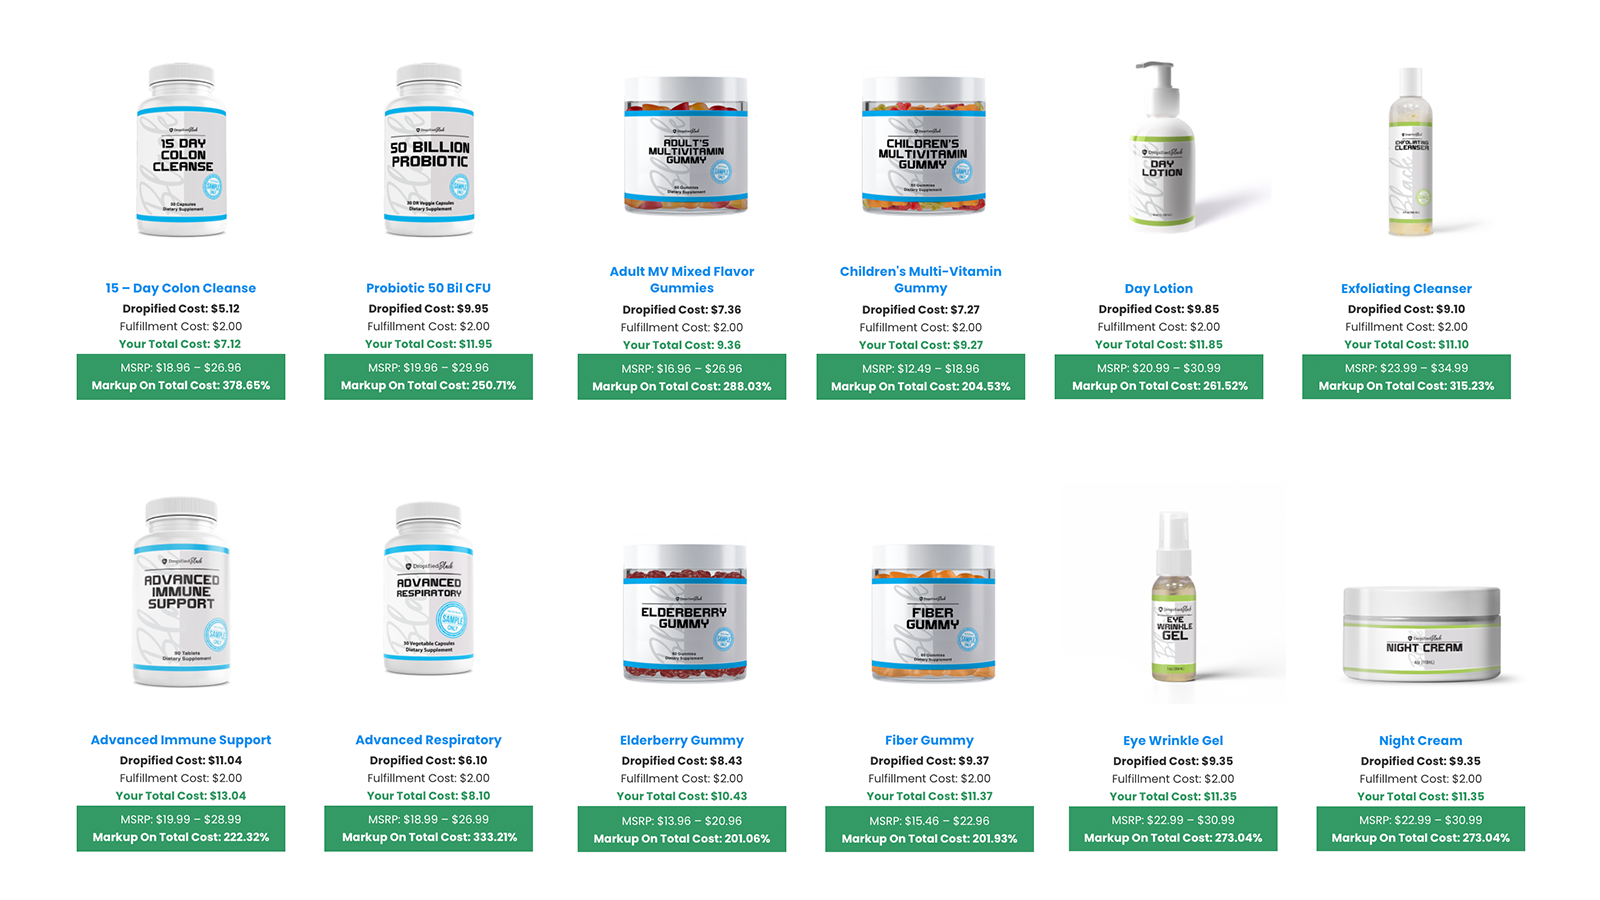 Browse our catalog of over 100+ private label products